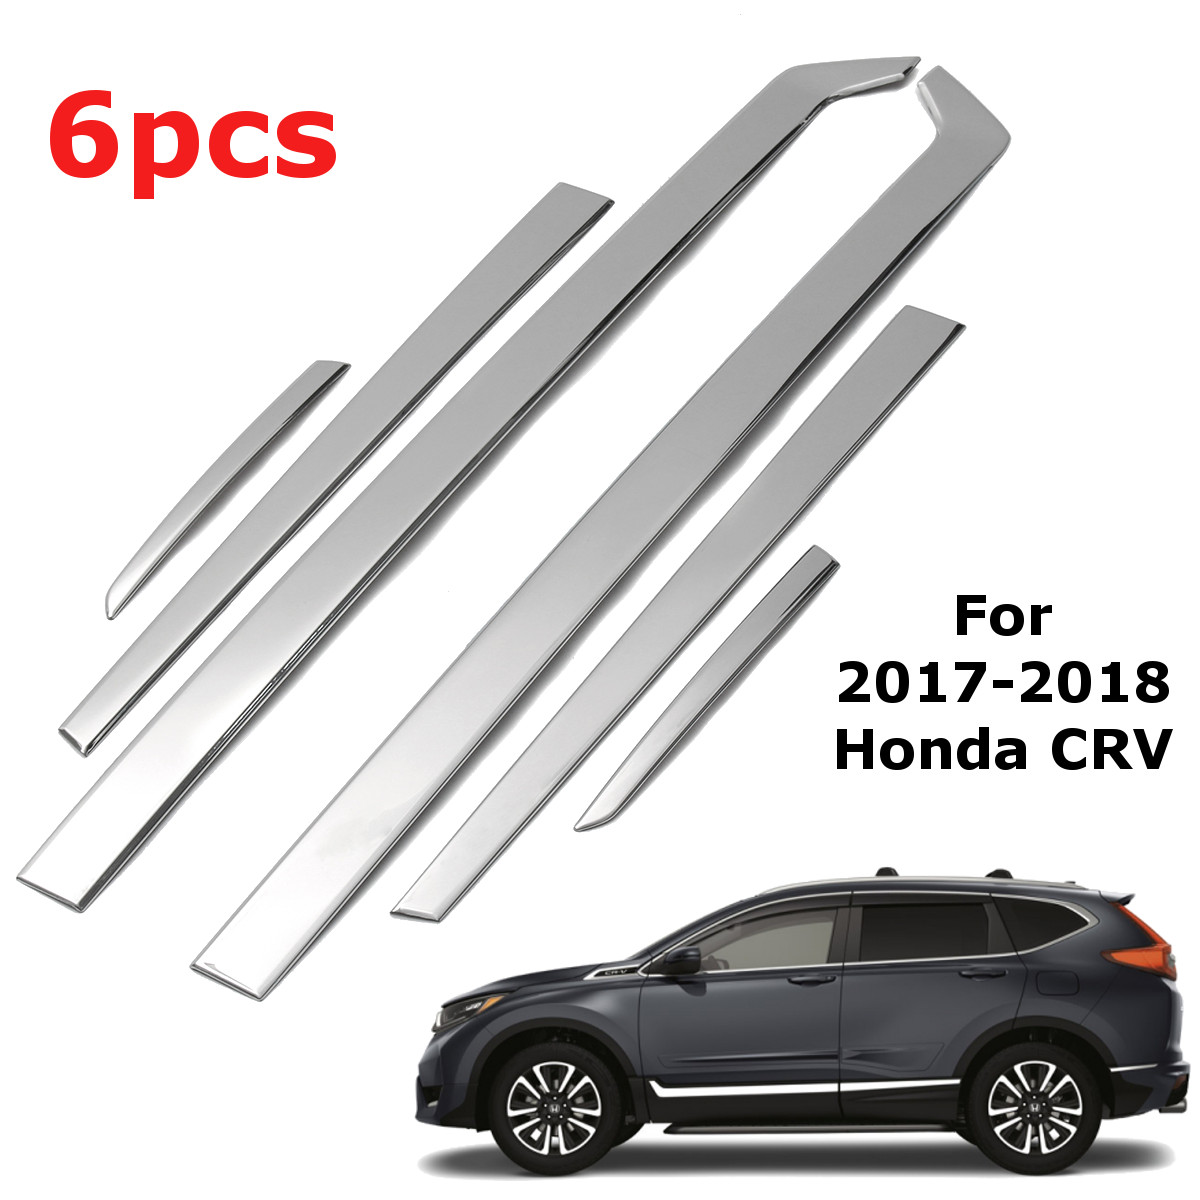 6PCS Chrome Stainless Steel Car Body Side Door Moulding Cover Trim For Honda CRV 2017 2018 Car Exterior Accessories Styling